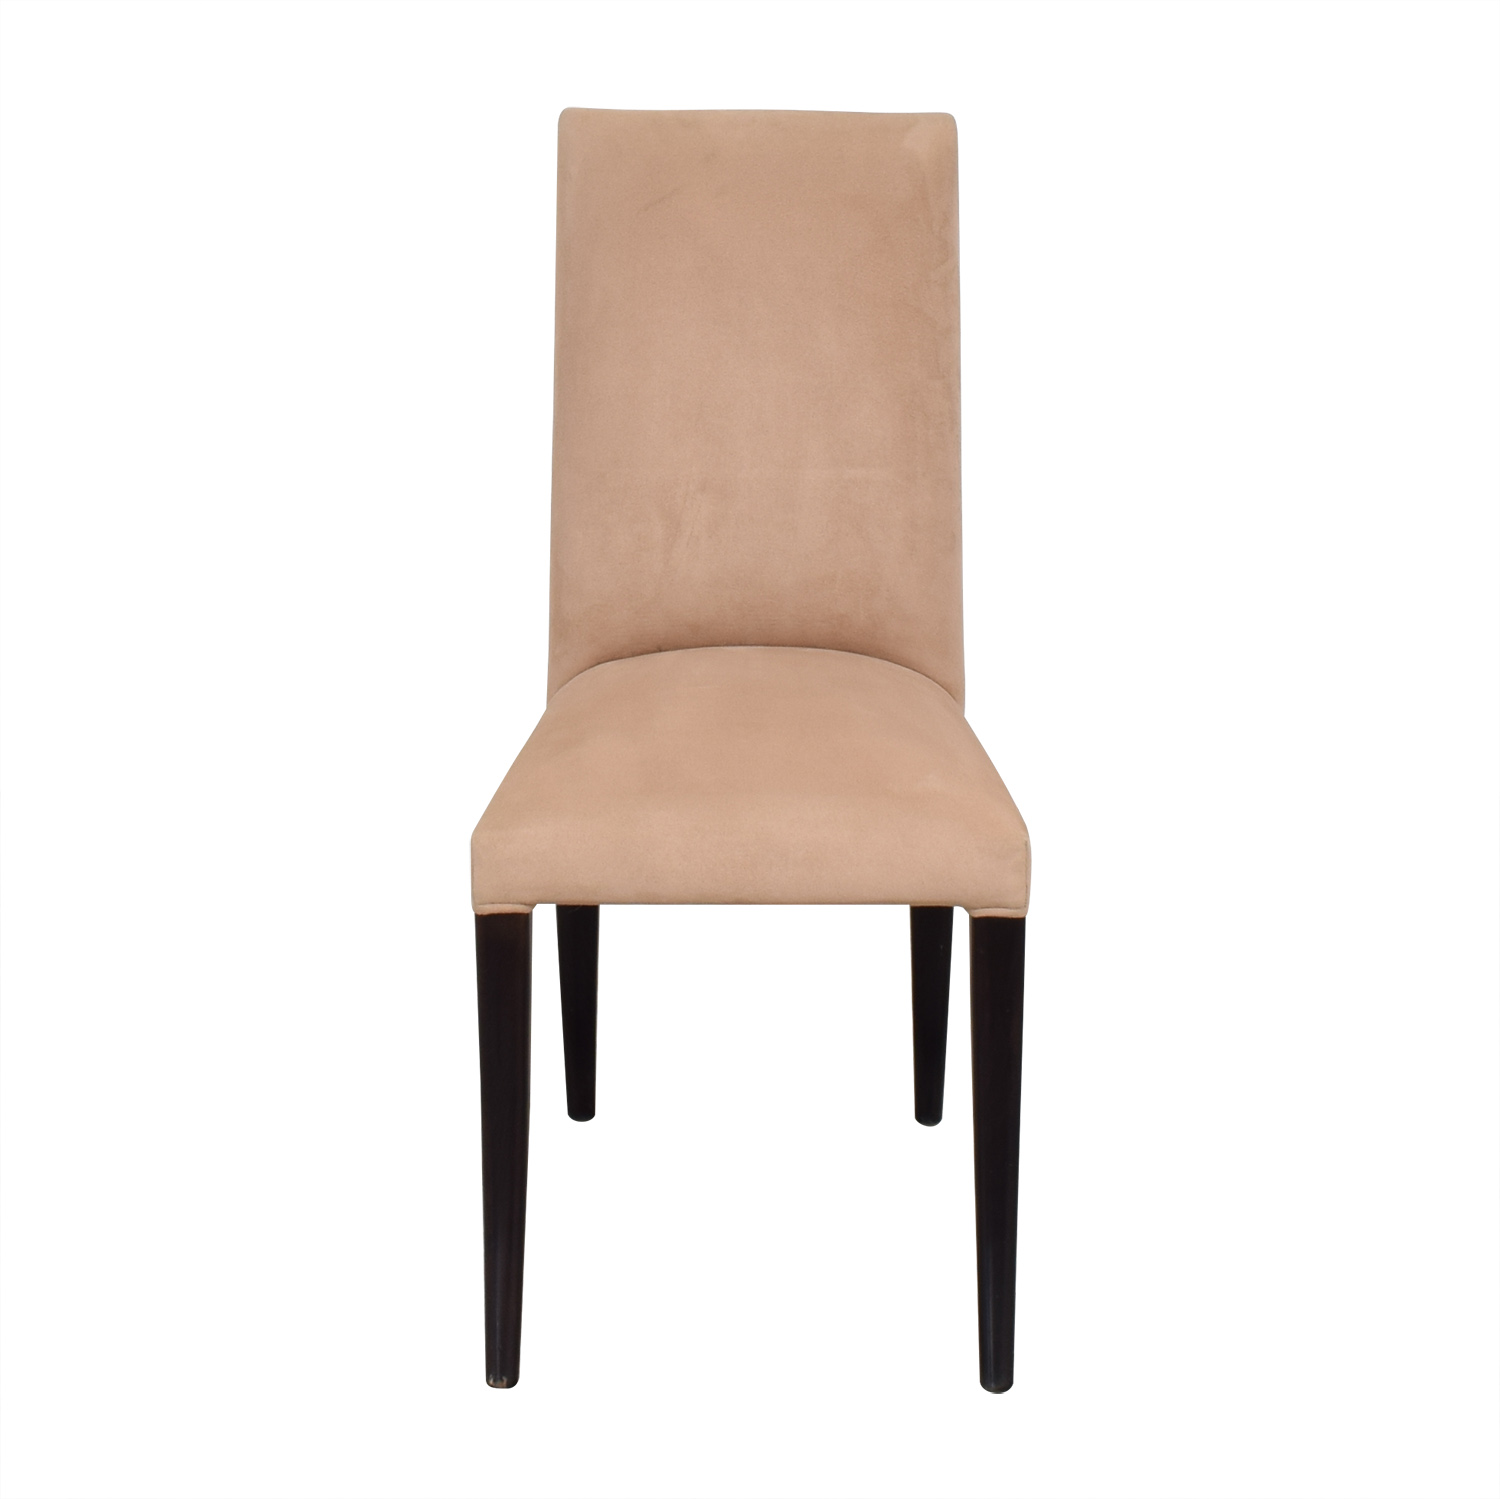 Upholstered Desk Chair ct